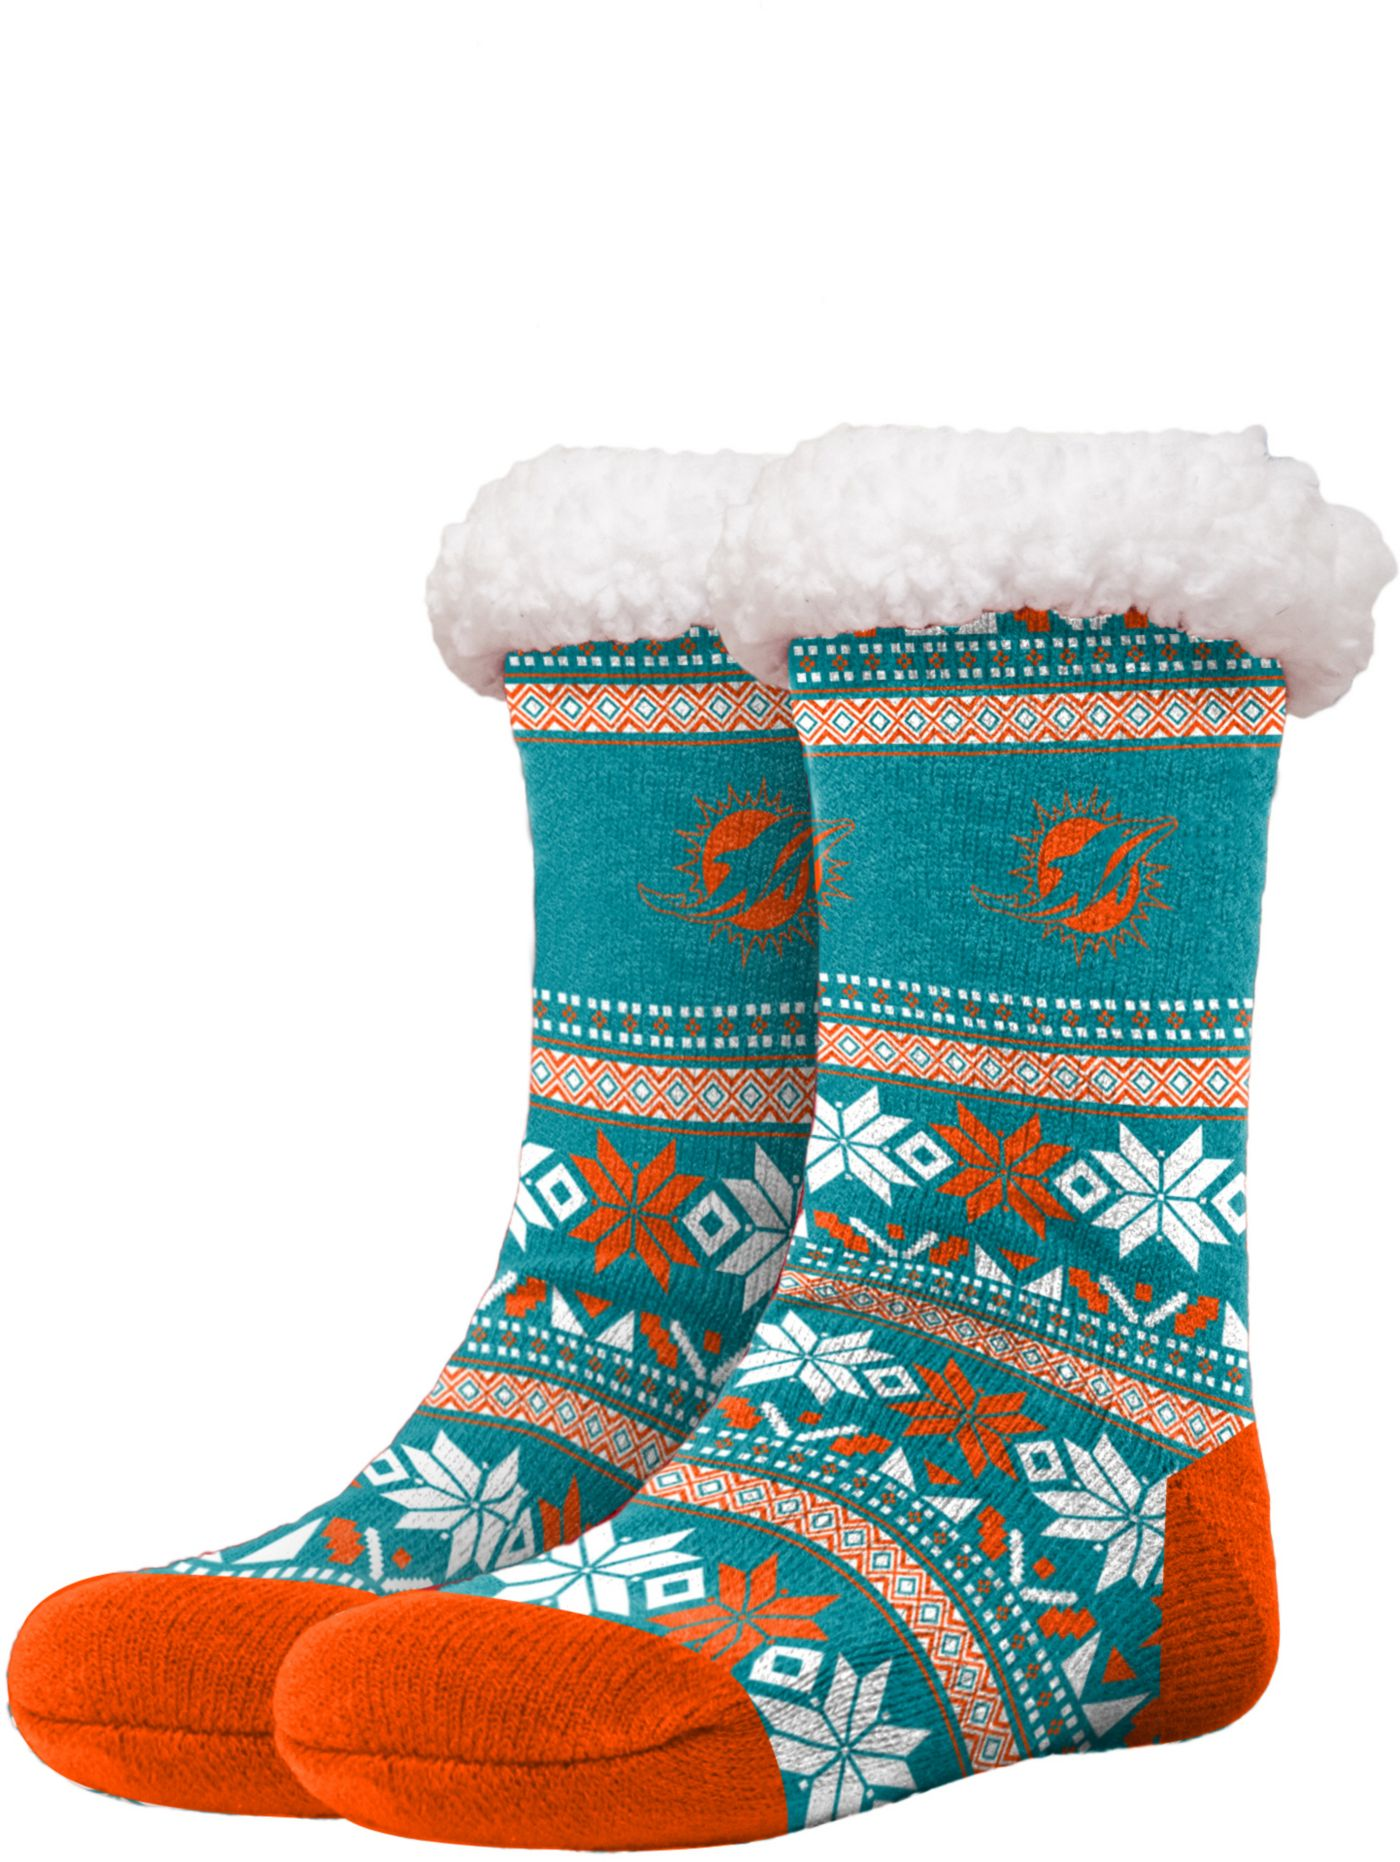 FOCO Miami Dolphins Footy Slippers